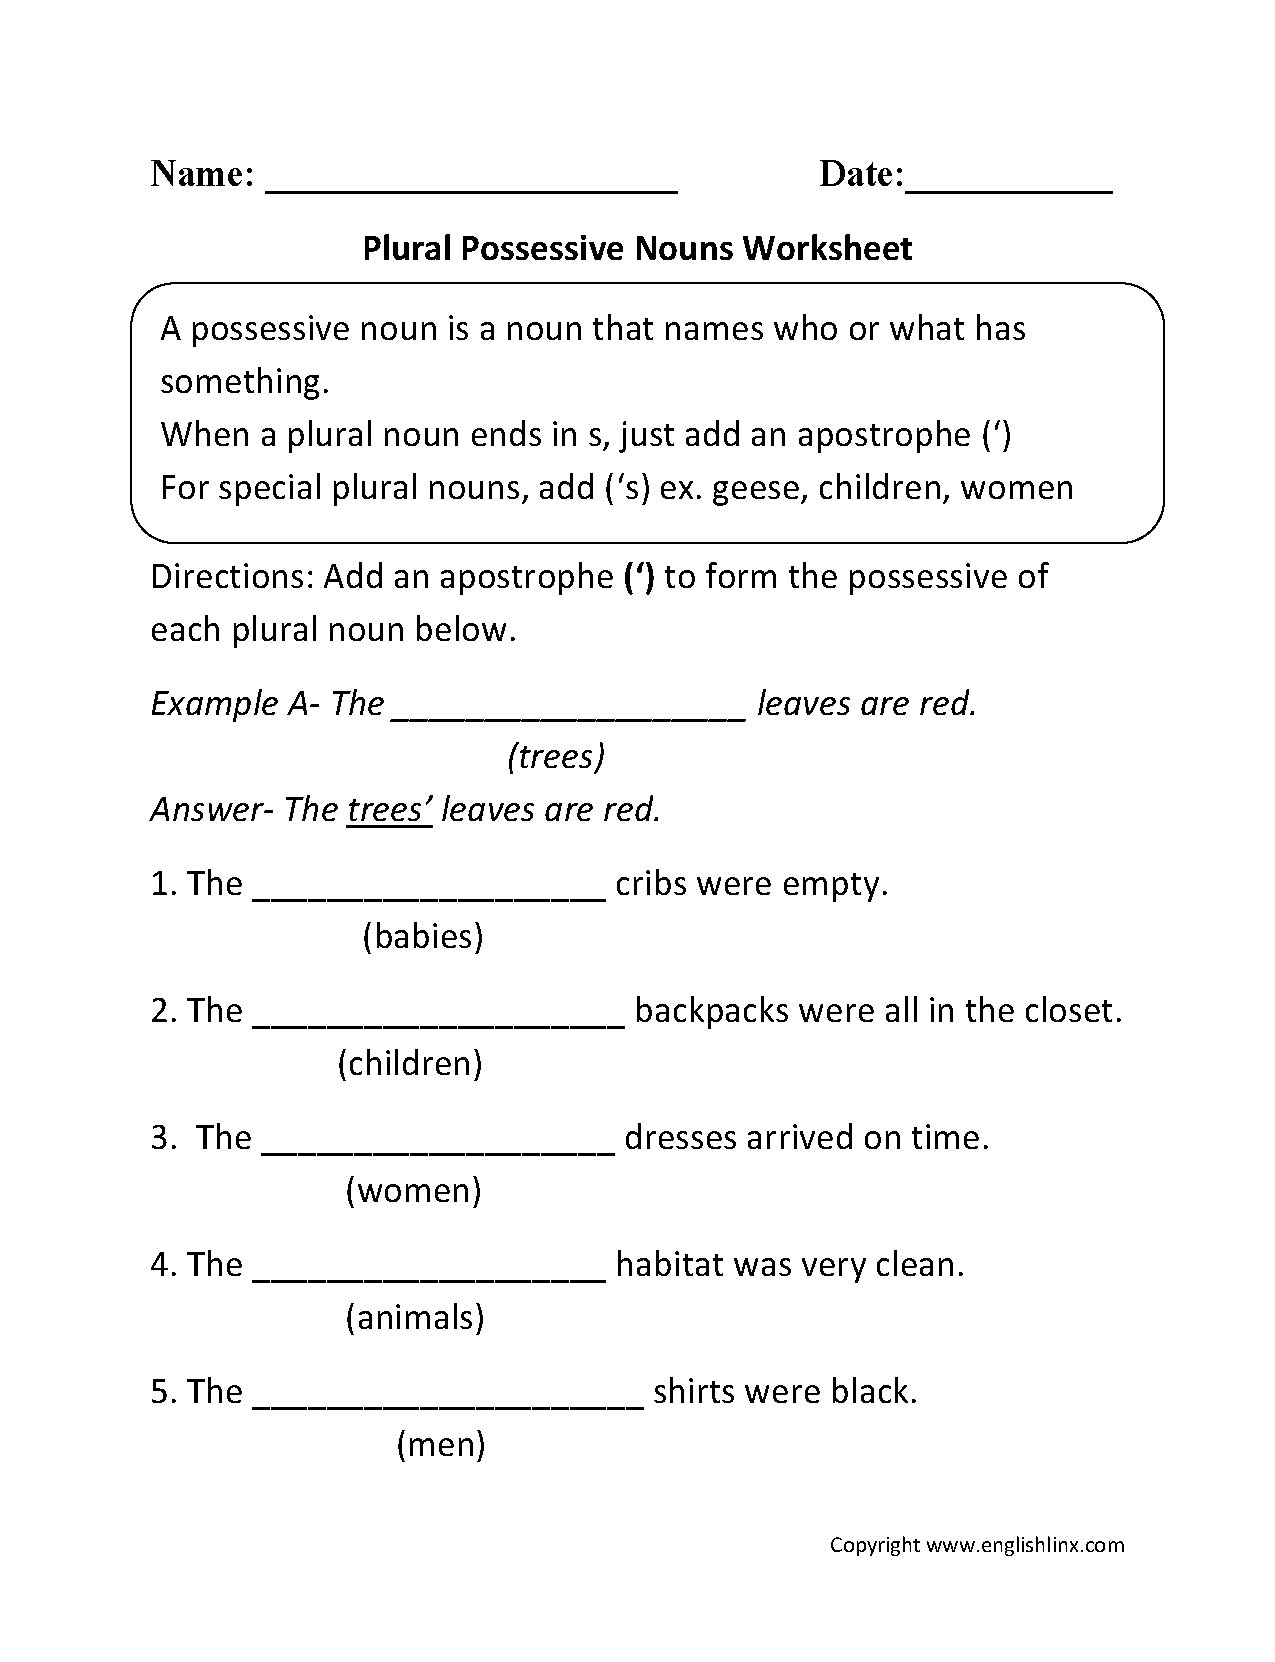 Aldiablosus  Winning Nouns Worksheets  Possessive Nouns Worksheets With Glamorous Possessive Nouns Worksheets With Delightful Music Theory Printable Worksheets Also English Year  Worksheets In Addition Number Lines Fractions Worksheets And Adverbs Of Degree Worksheet As Well As Find The Odd One Out Worksheets Additionally English Grade  Worksheets From Englishlinxcom With Aldiablosus  Glamorous Nouns Worksheets  Possessive Nouns Worksheets With Delightful Possessive Nouns Worksheets And Winning Music Theory Printable Worksheets Also English Year  Worksheets In Addition Number Lines Fractions Worksheets From Englishlinxcom